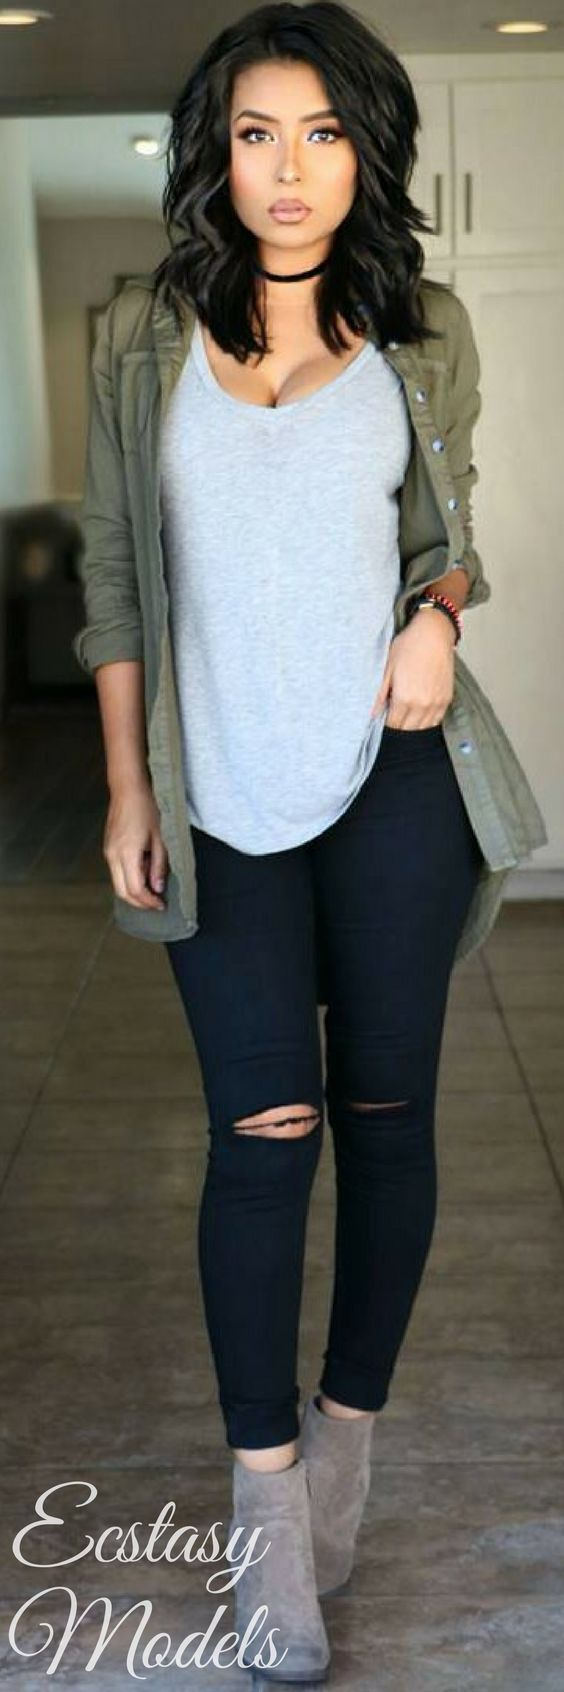 8d9c0147c1dd4ac5ea121bbadb8b7a3a - Texas A & M University College Station best 15 Winter college fashion ideas